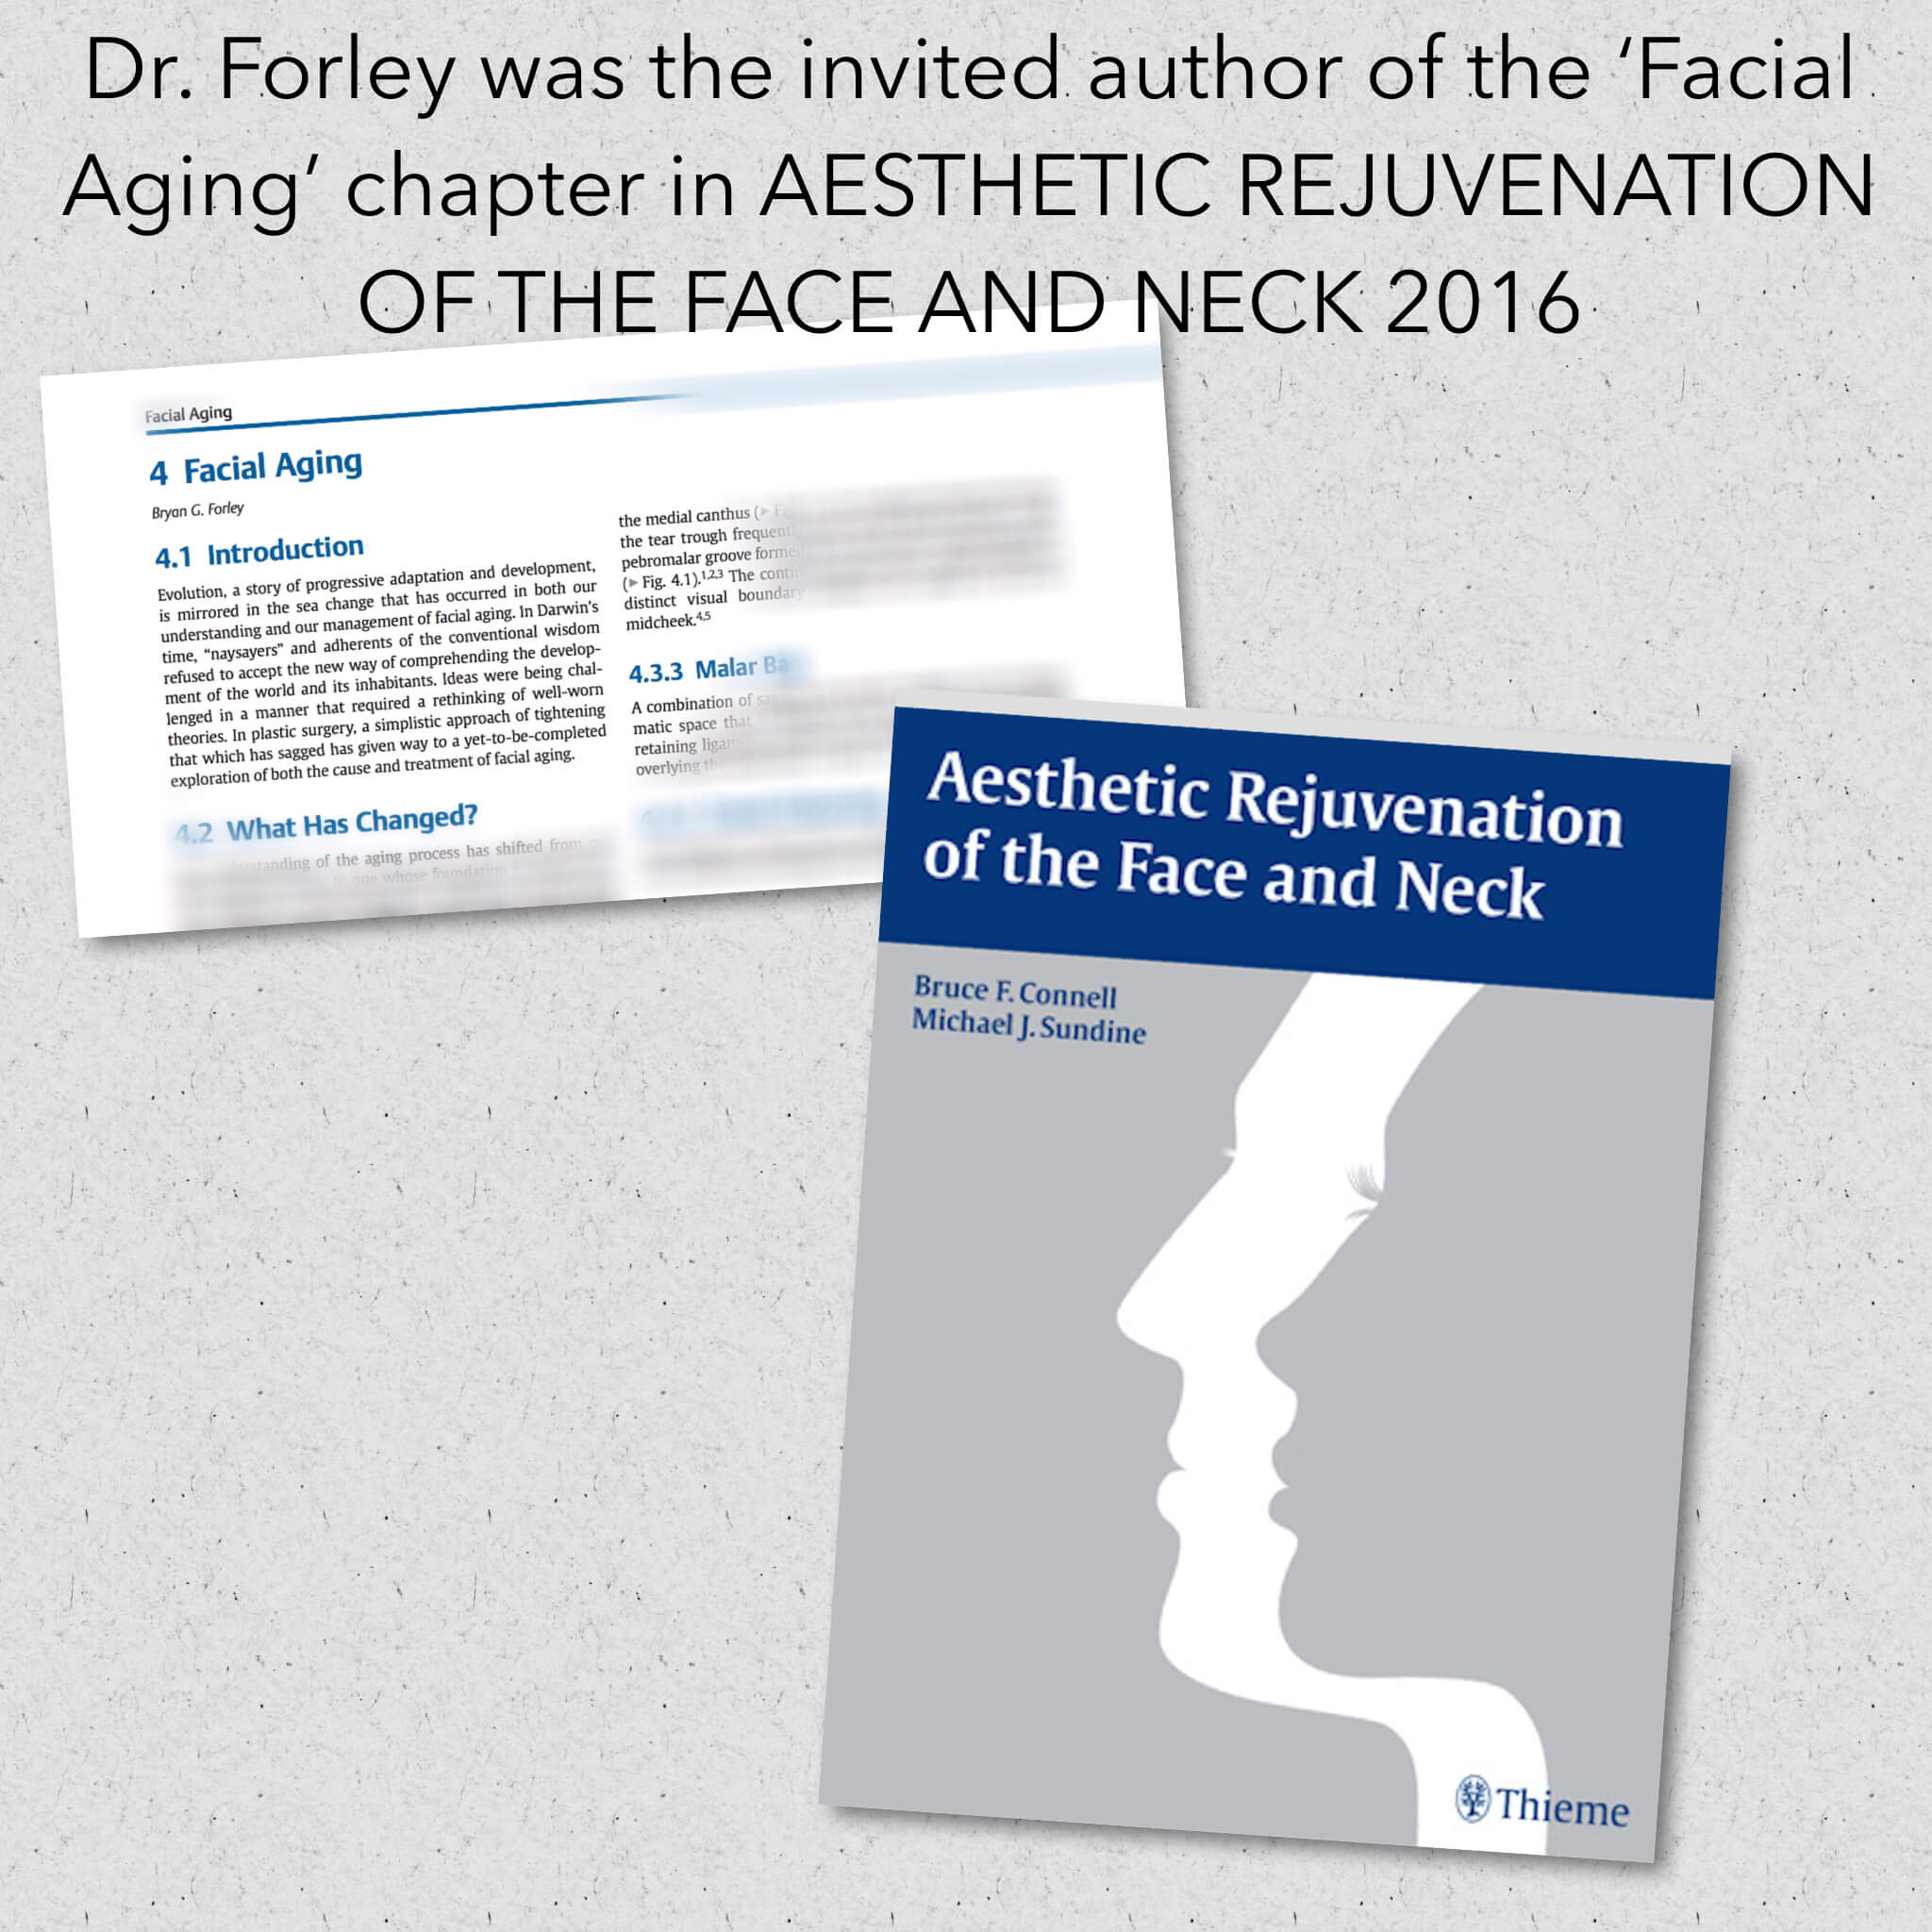 Dr. Forley was the invited author of the 'Facial Aging' chapter in Aesthetic Rejuvenation of the face and neck 2016